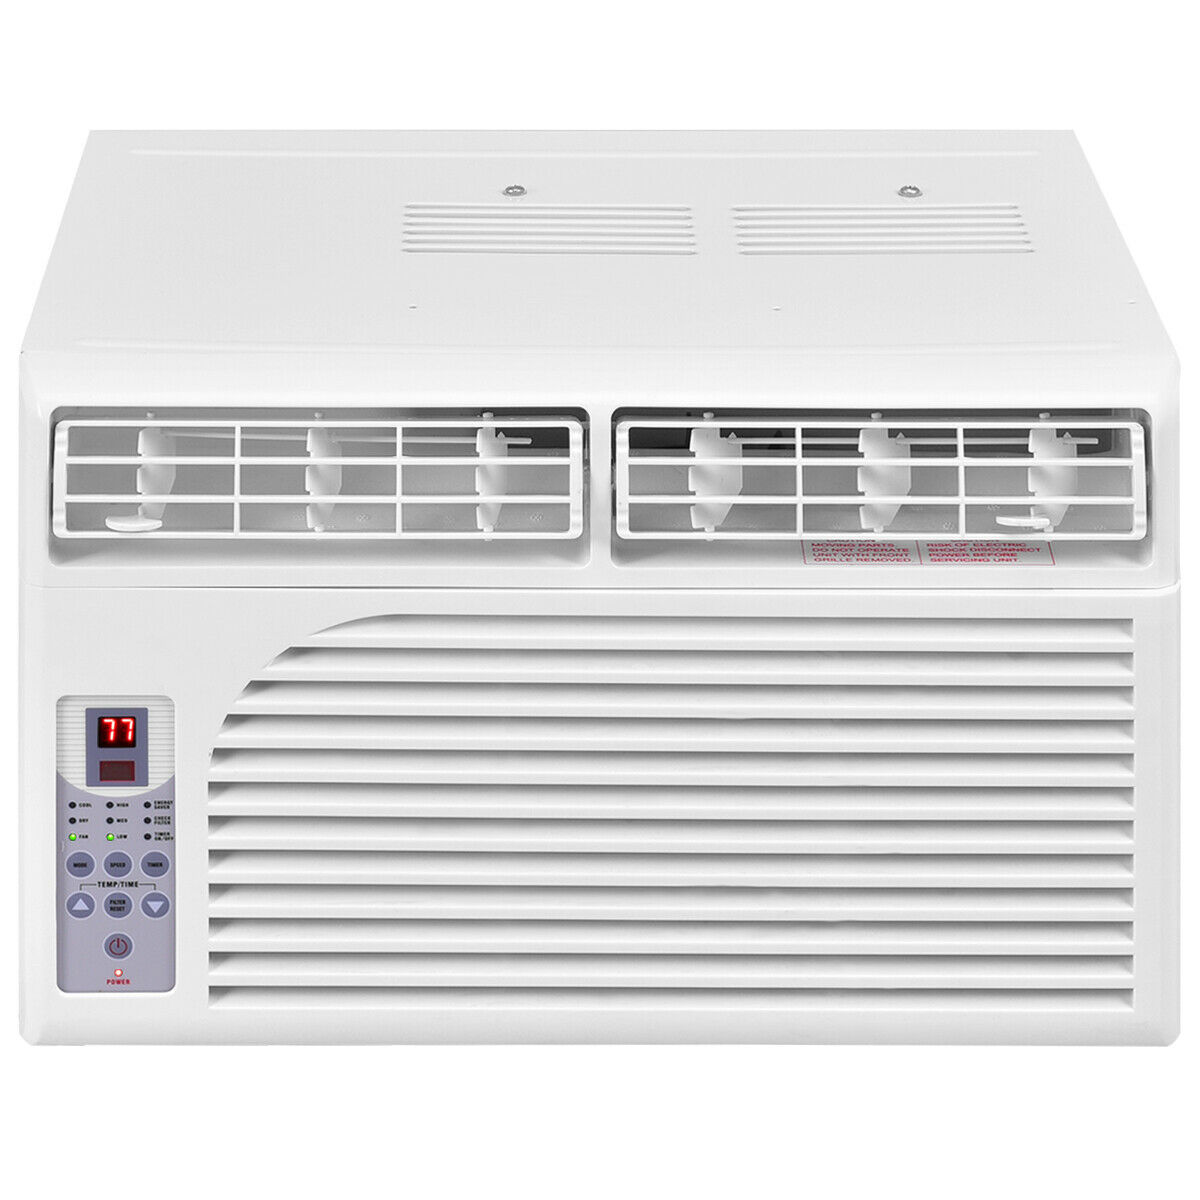 Costway 10000 BTU White Compact 115V Window-Mounted Air Conditioner w/ Remote Control